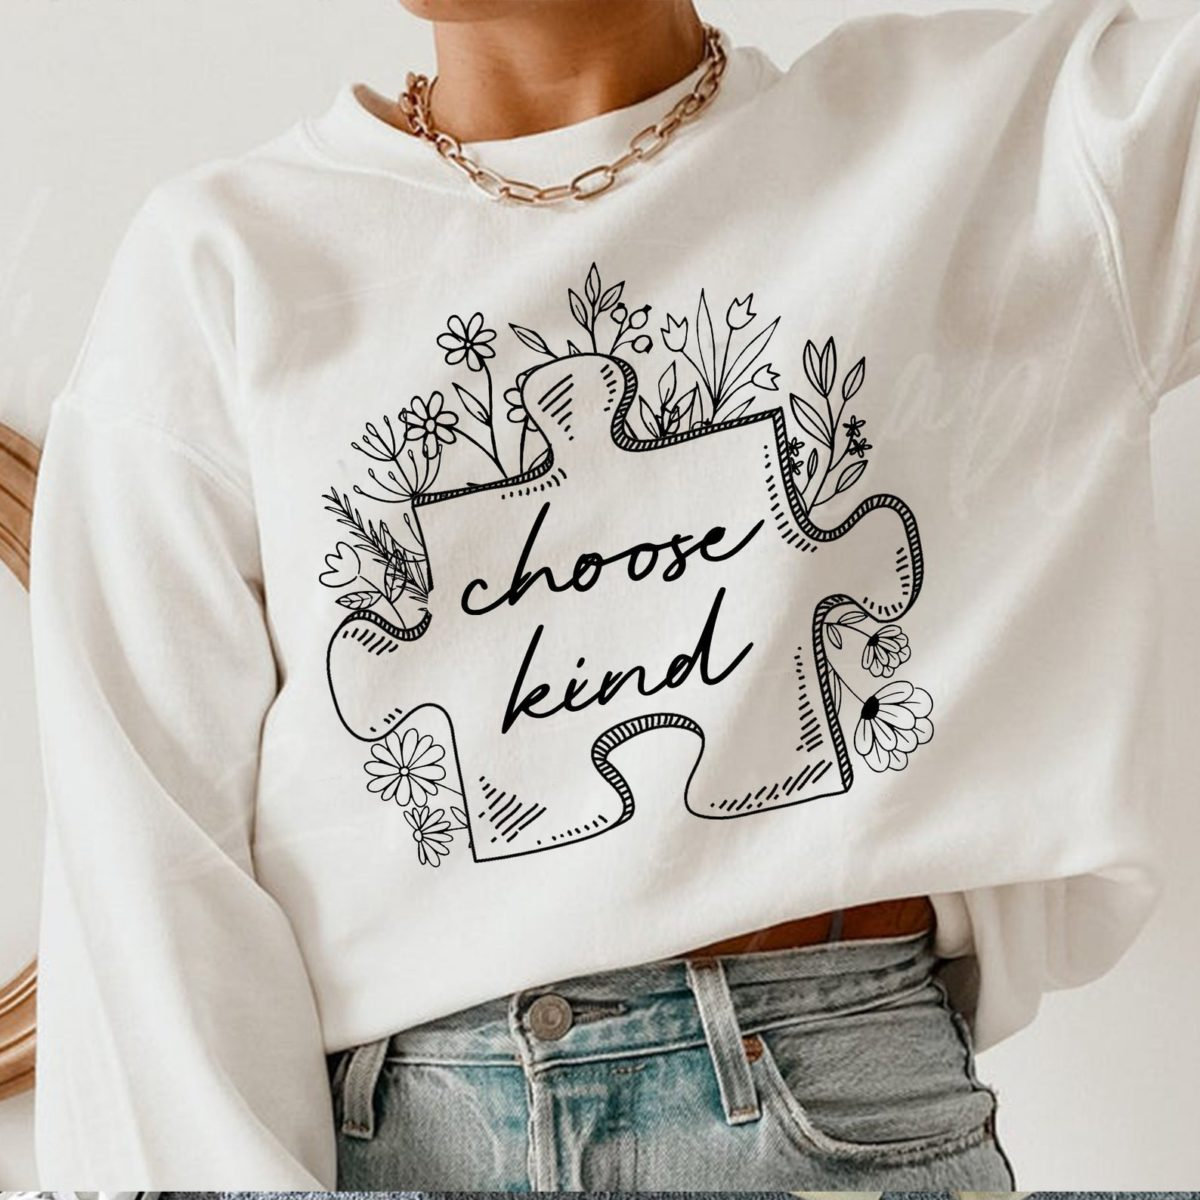 26 awesome etsy t-shirts that send a positive message and make great gifts | parenting questions | mamas uncut il 1588xn.2951053938 l4f3